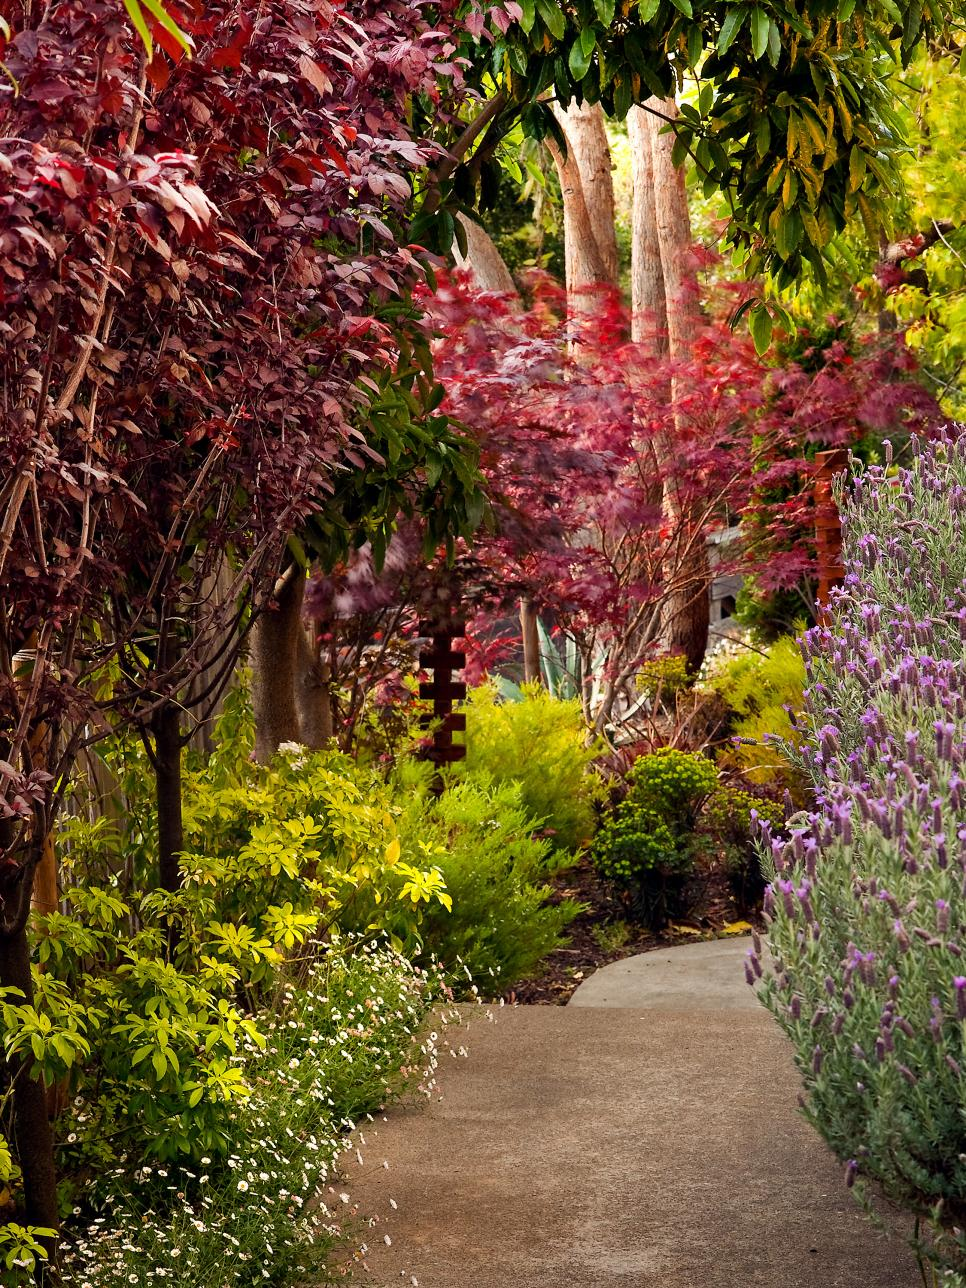 Walkway Lined with Colorful Flowering Plants and Trees